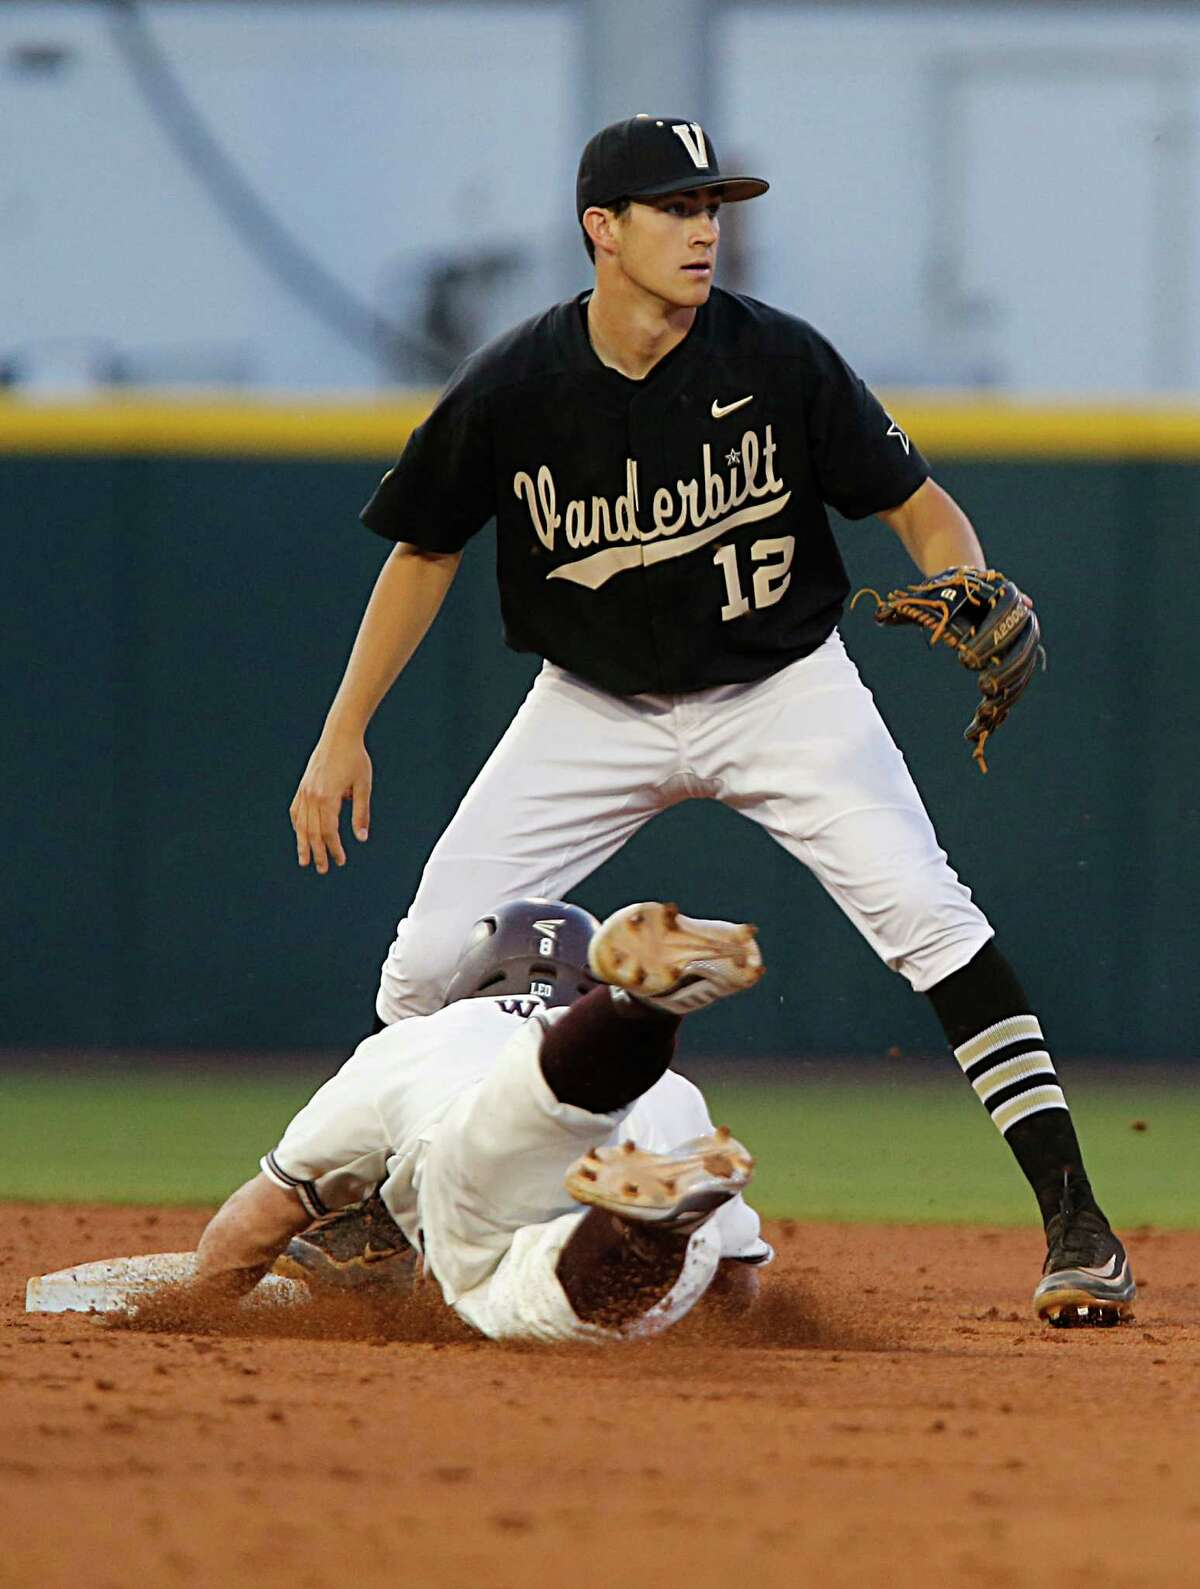 Texas A&M catcher Boomer White left, dives past Vanderbilt infielder Connor Kaiser right, into second base after hitting a double during the sixth inning of college baseball game action at Blue Bell Park Thursday, May 5, 2016, in College Station.